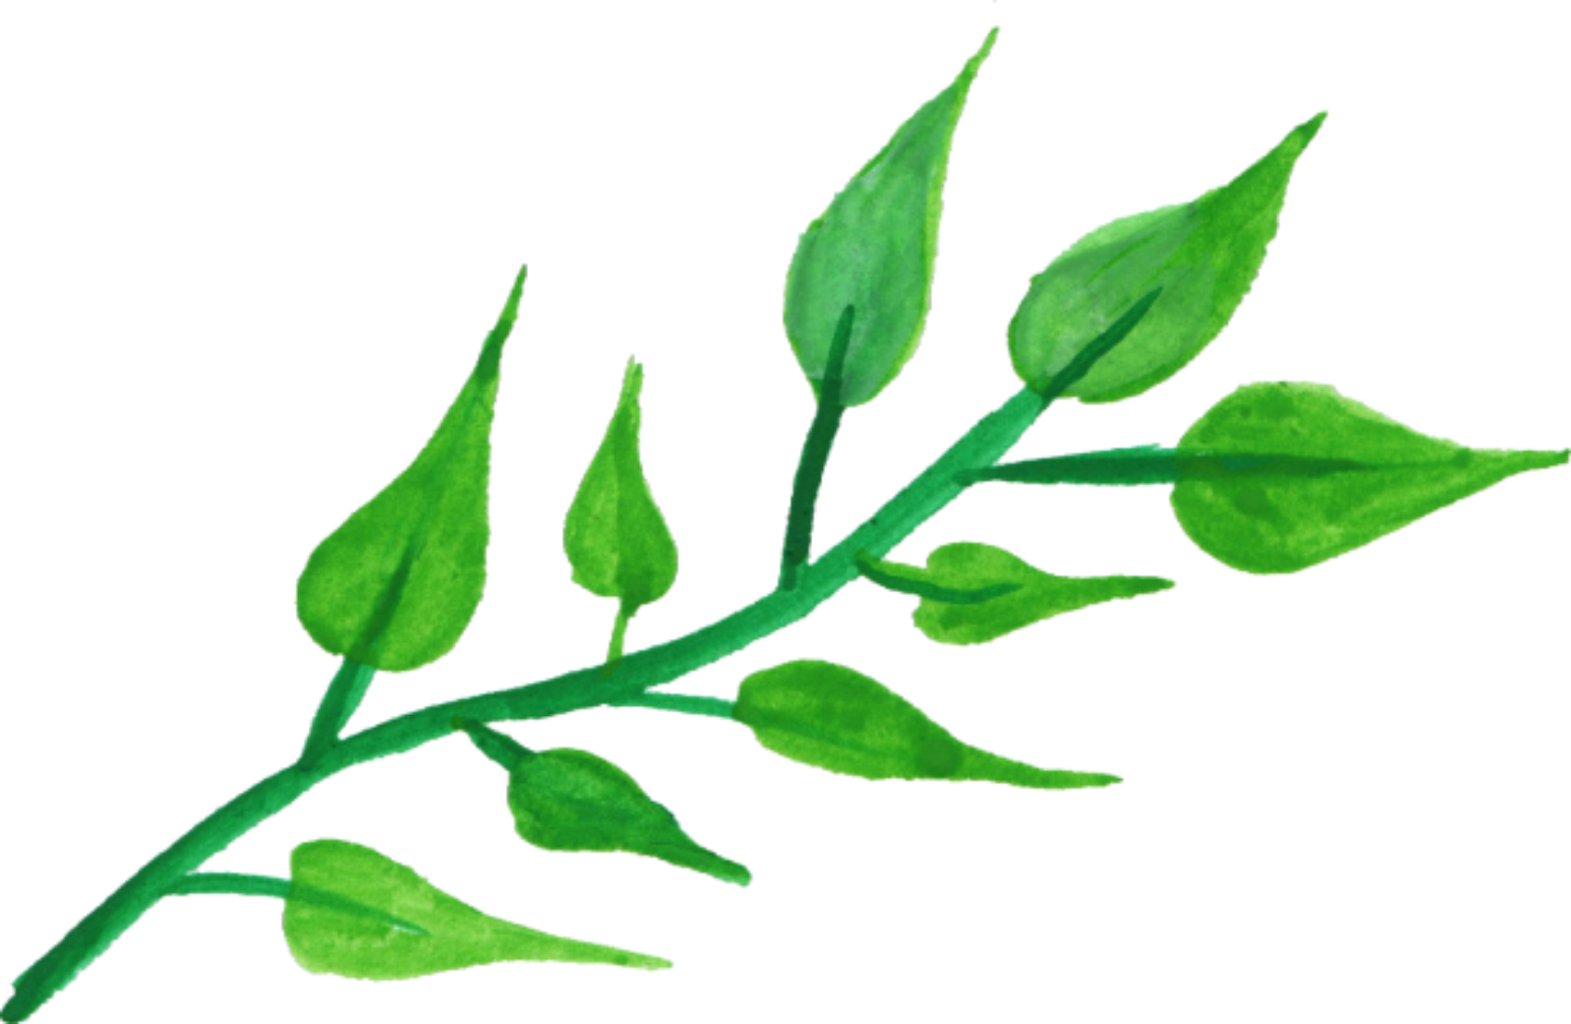 Watercolor greenery png. Ftestickers floral report abuse